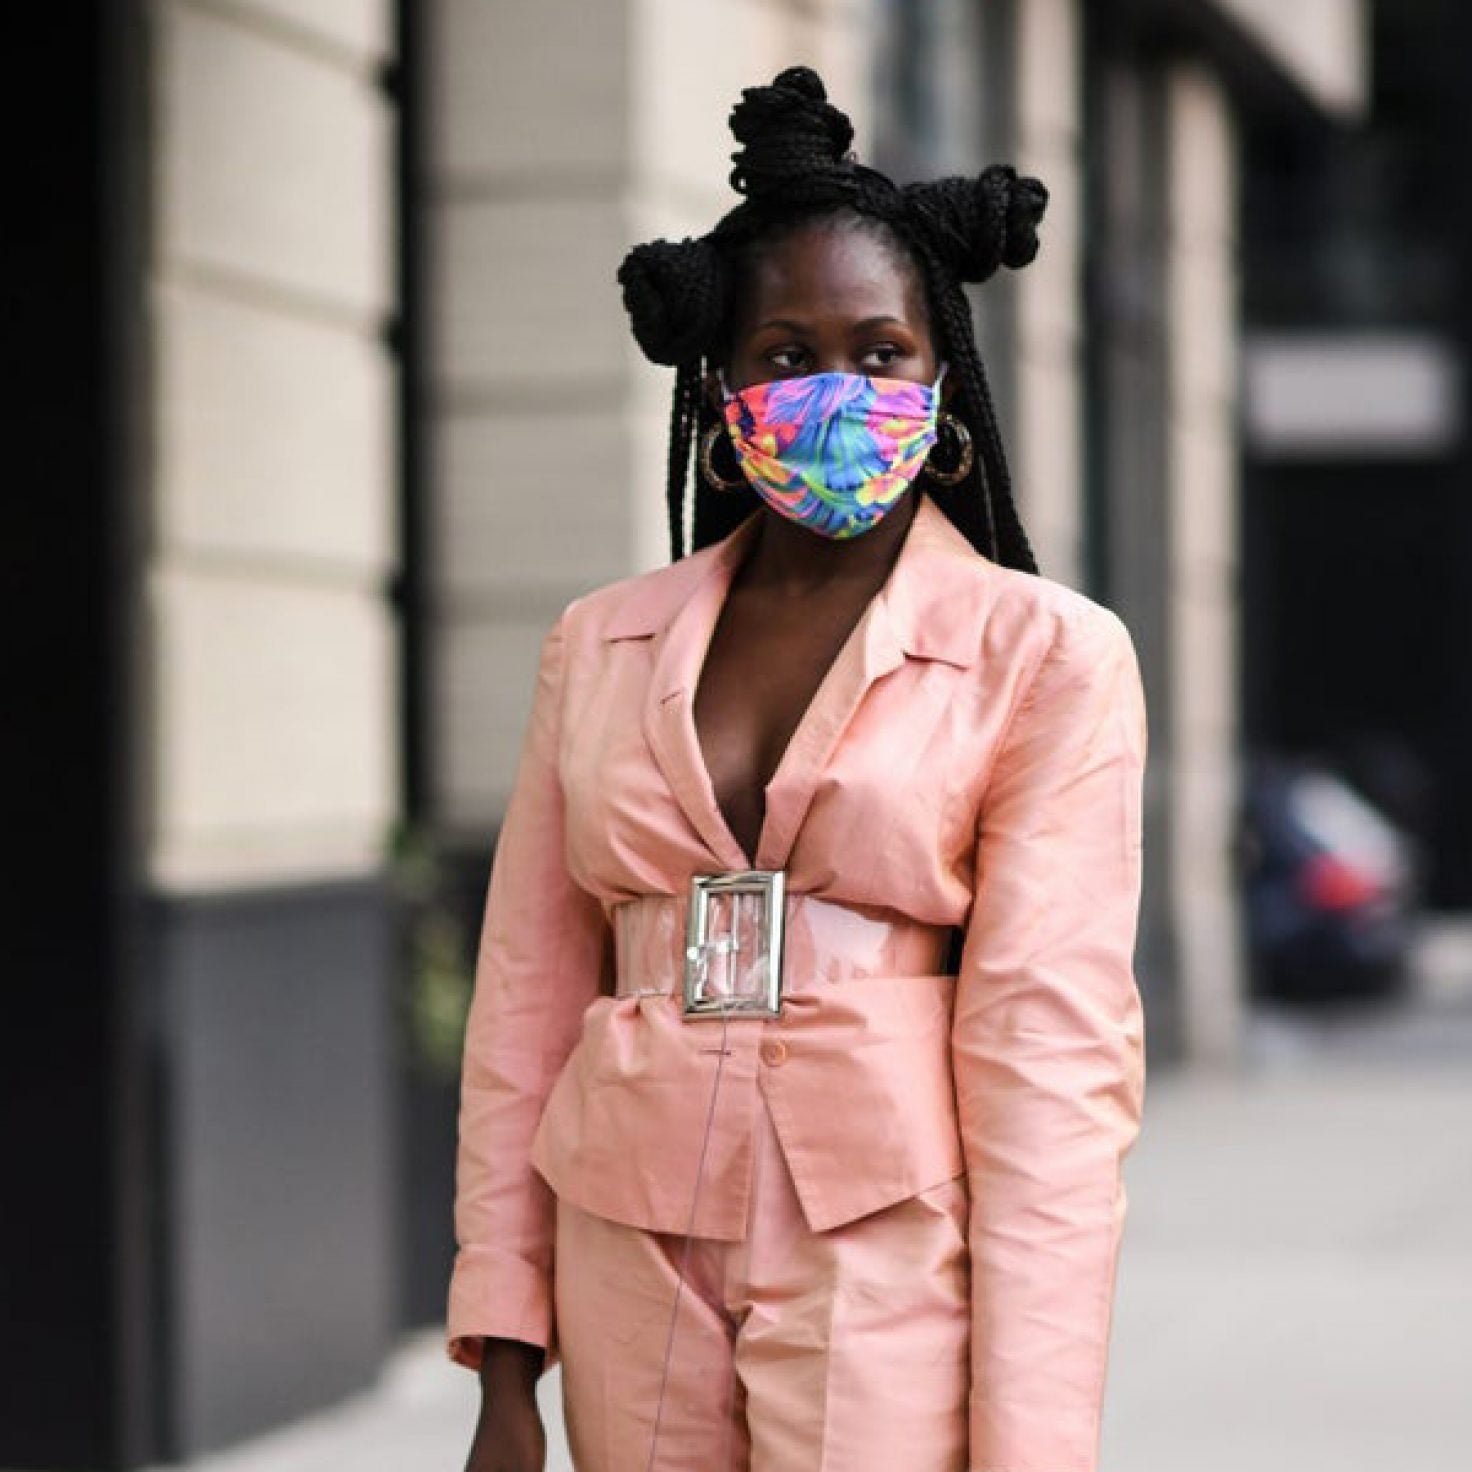 NYFW: The Best Street Style From Spring/Summer 2021